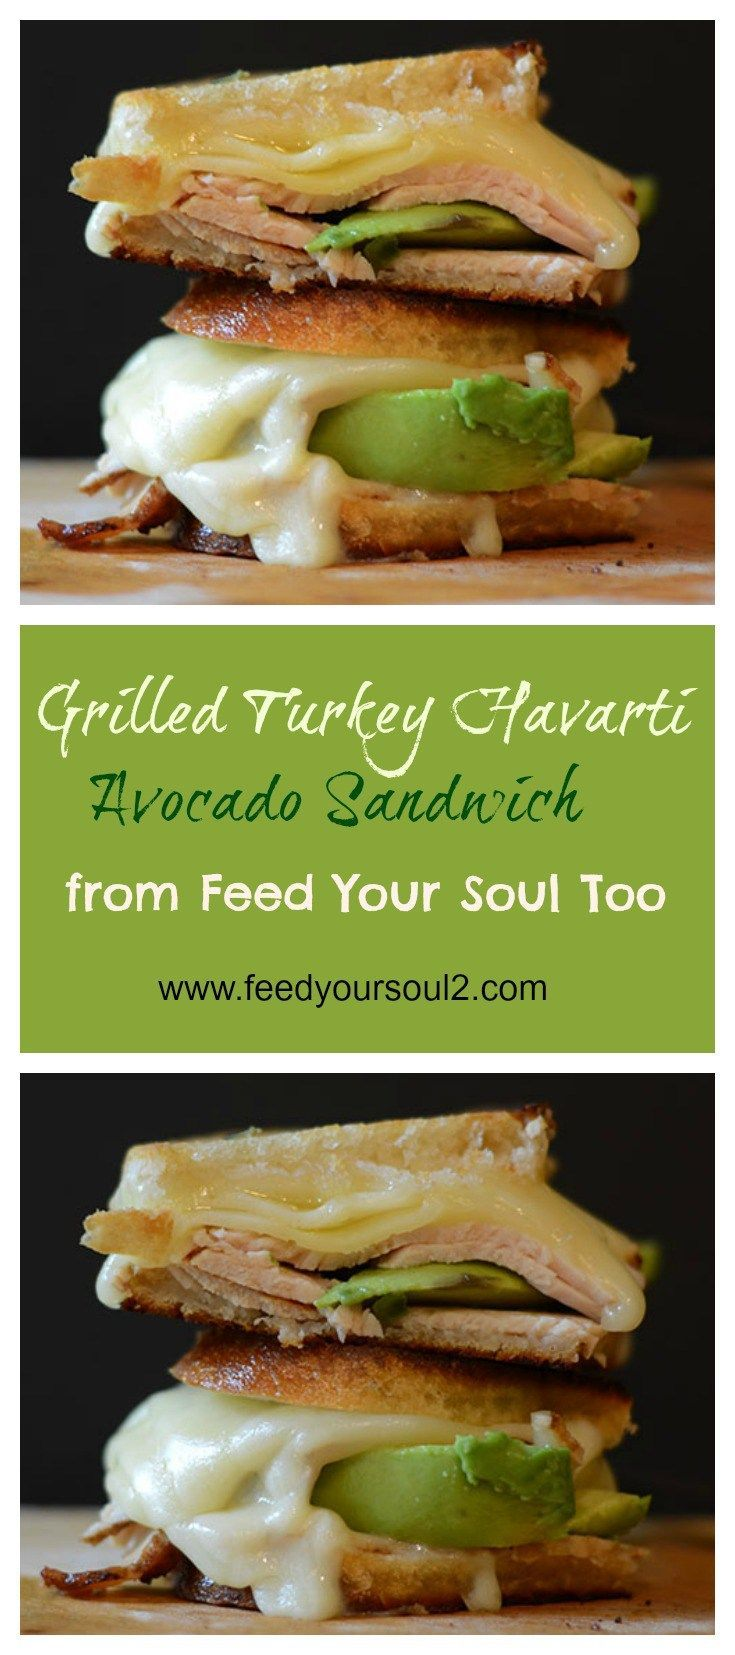 Grilled Turkey Havarti & Avocado Sandwich from Feed Your Soul Too